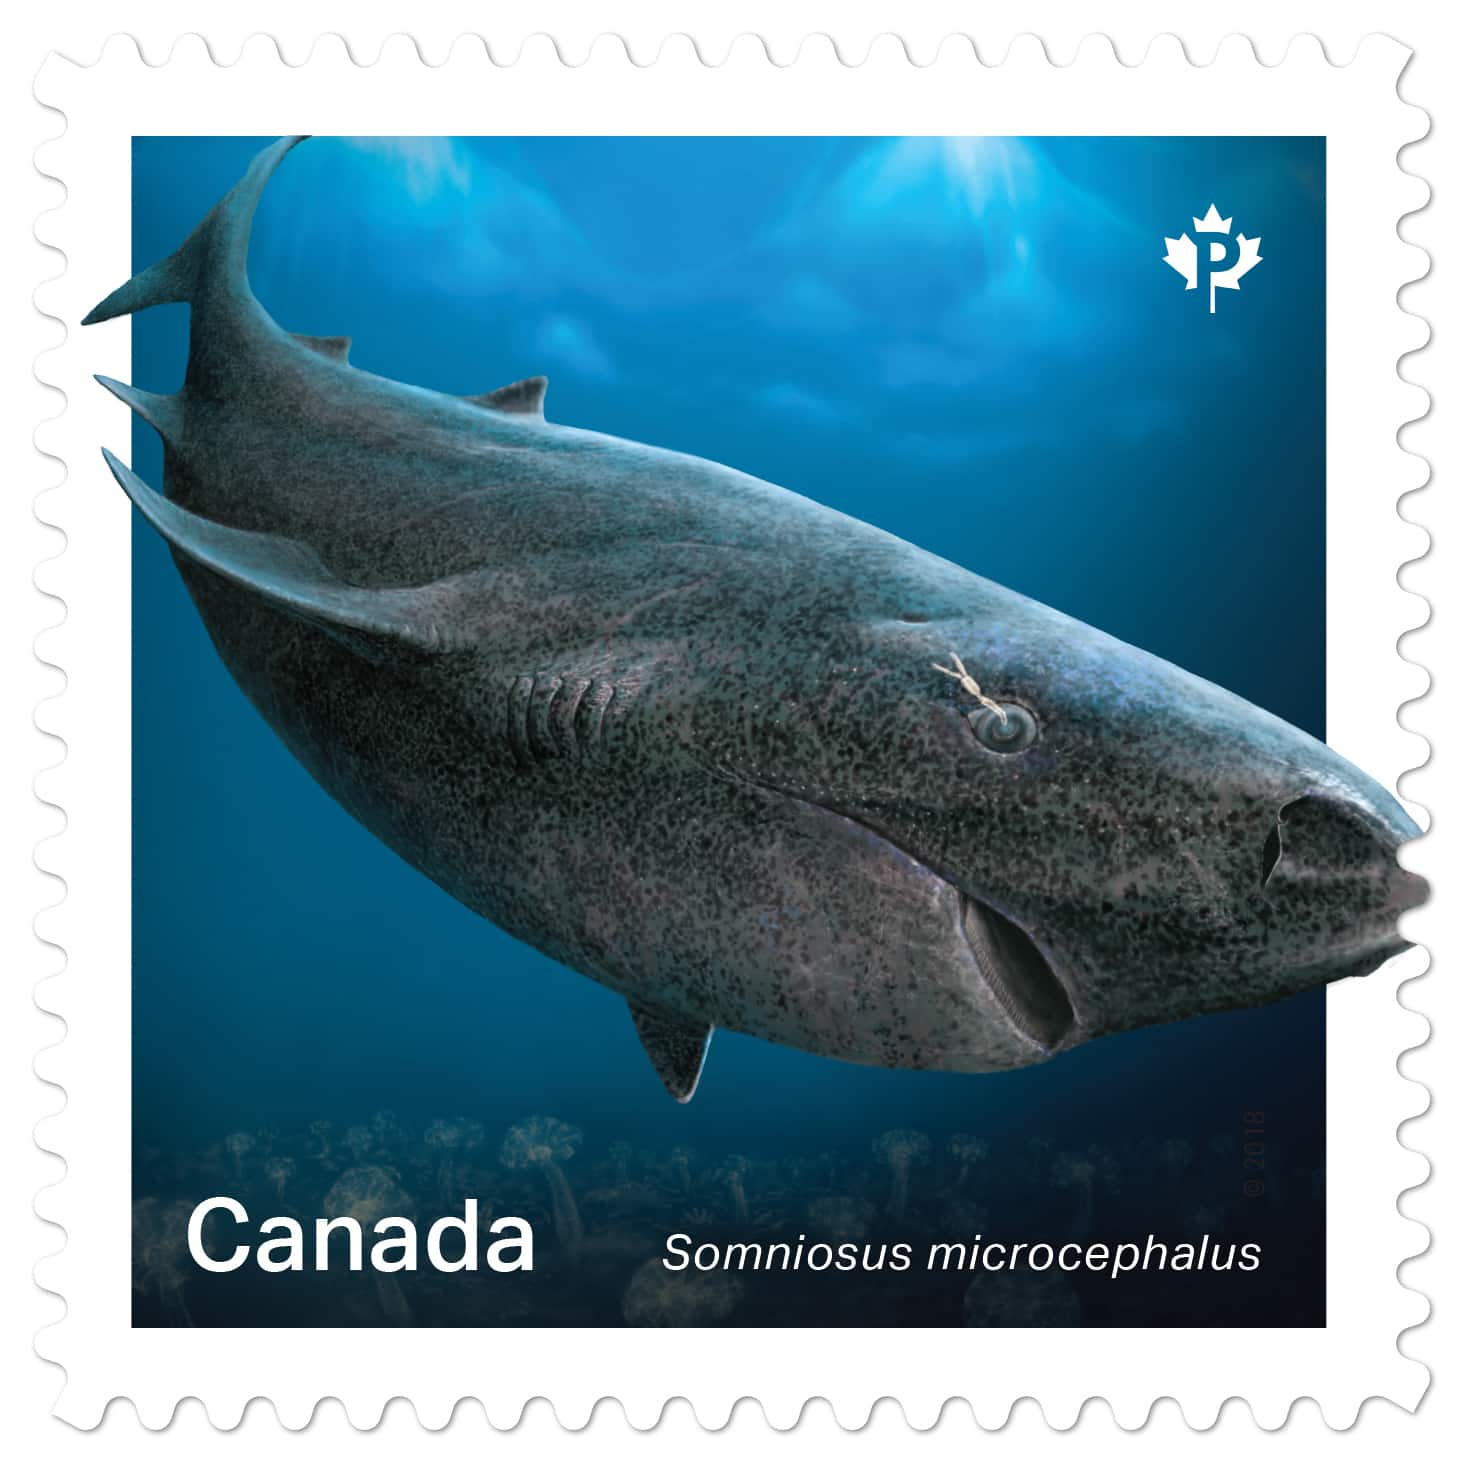 New stamps feature sharks | Article | Kids News